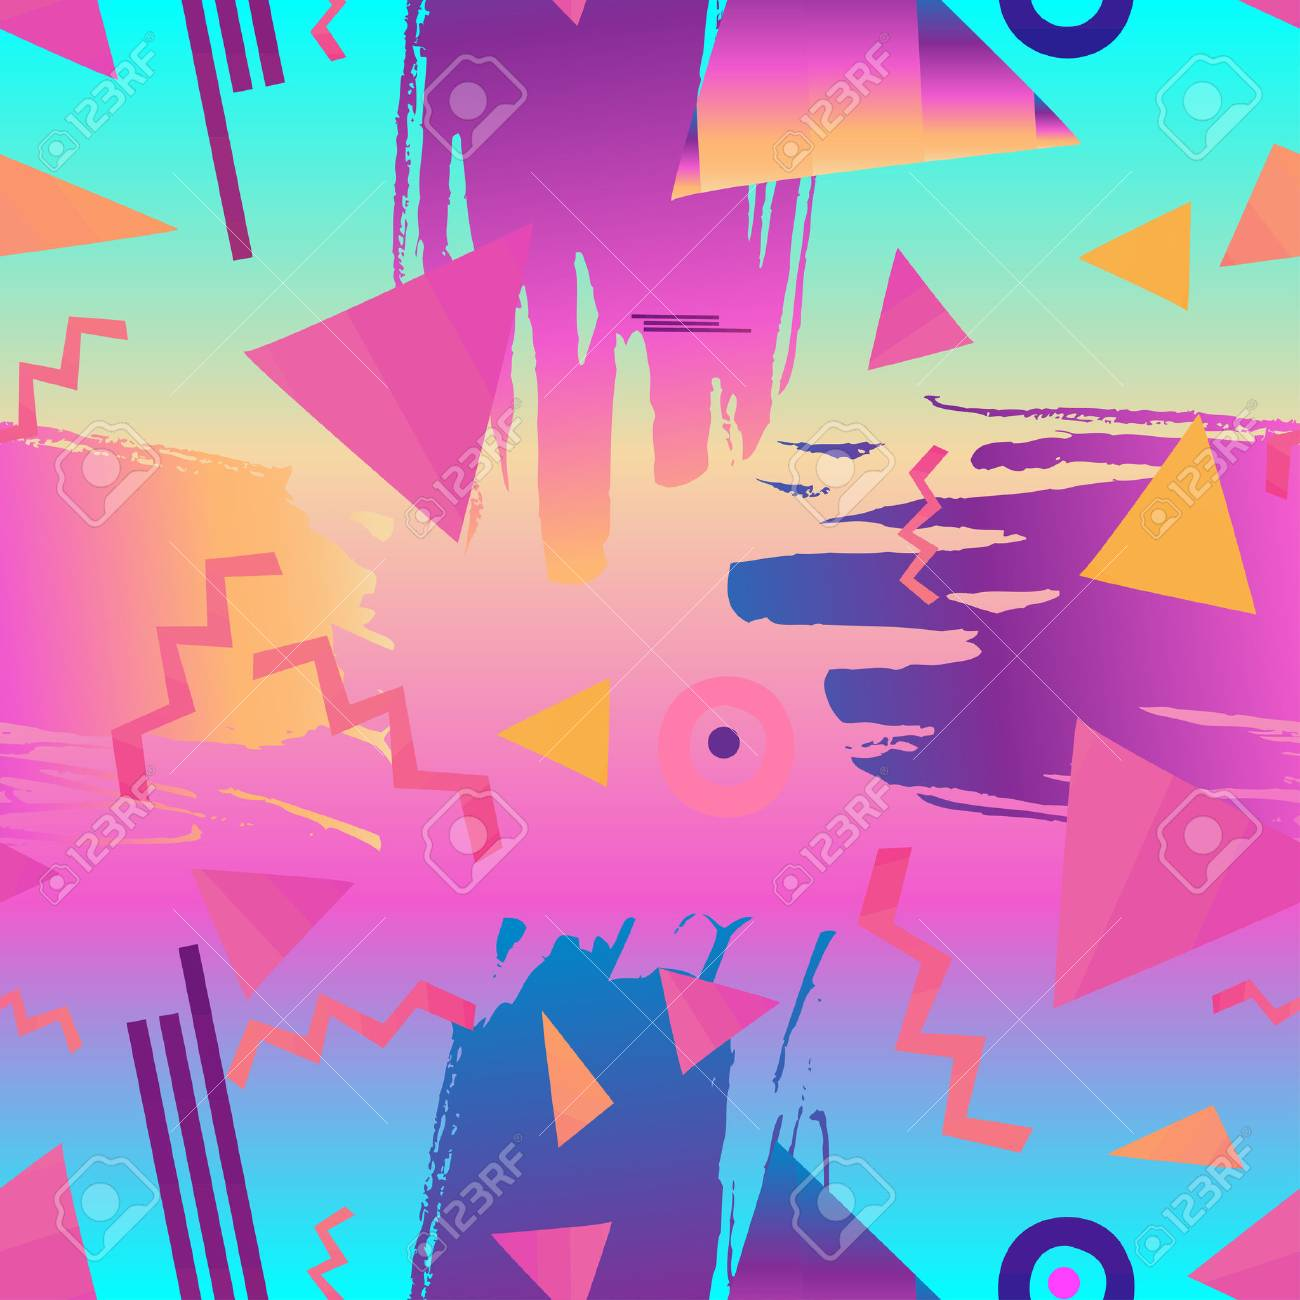 Retro vintage 80s or 90s fashion style abstract seamless pattern background. Good for textile fabric design, wrapping paper and website wallpapers. Vector illustration. - 79141421